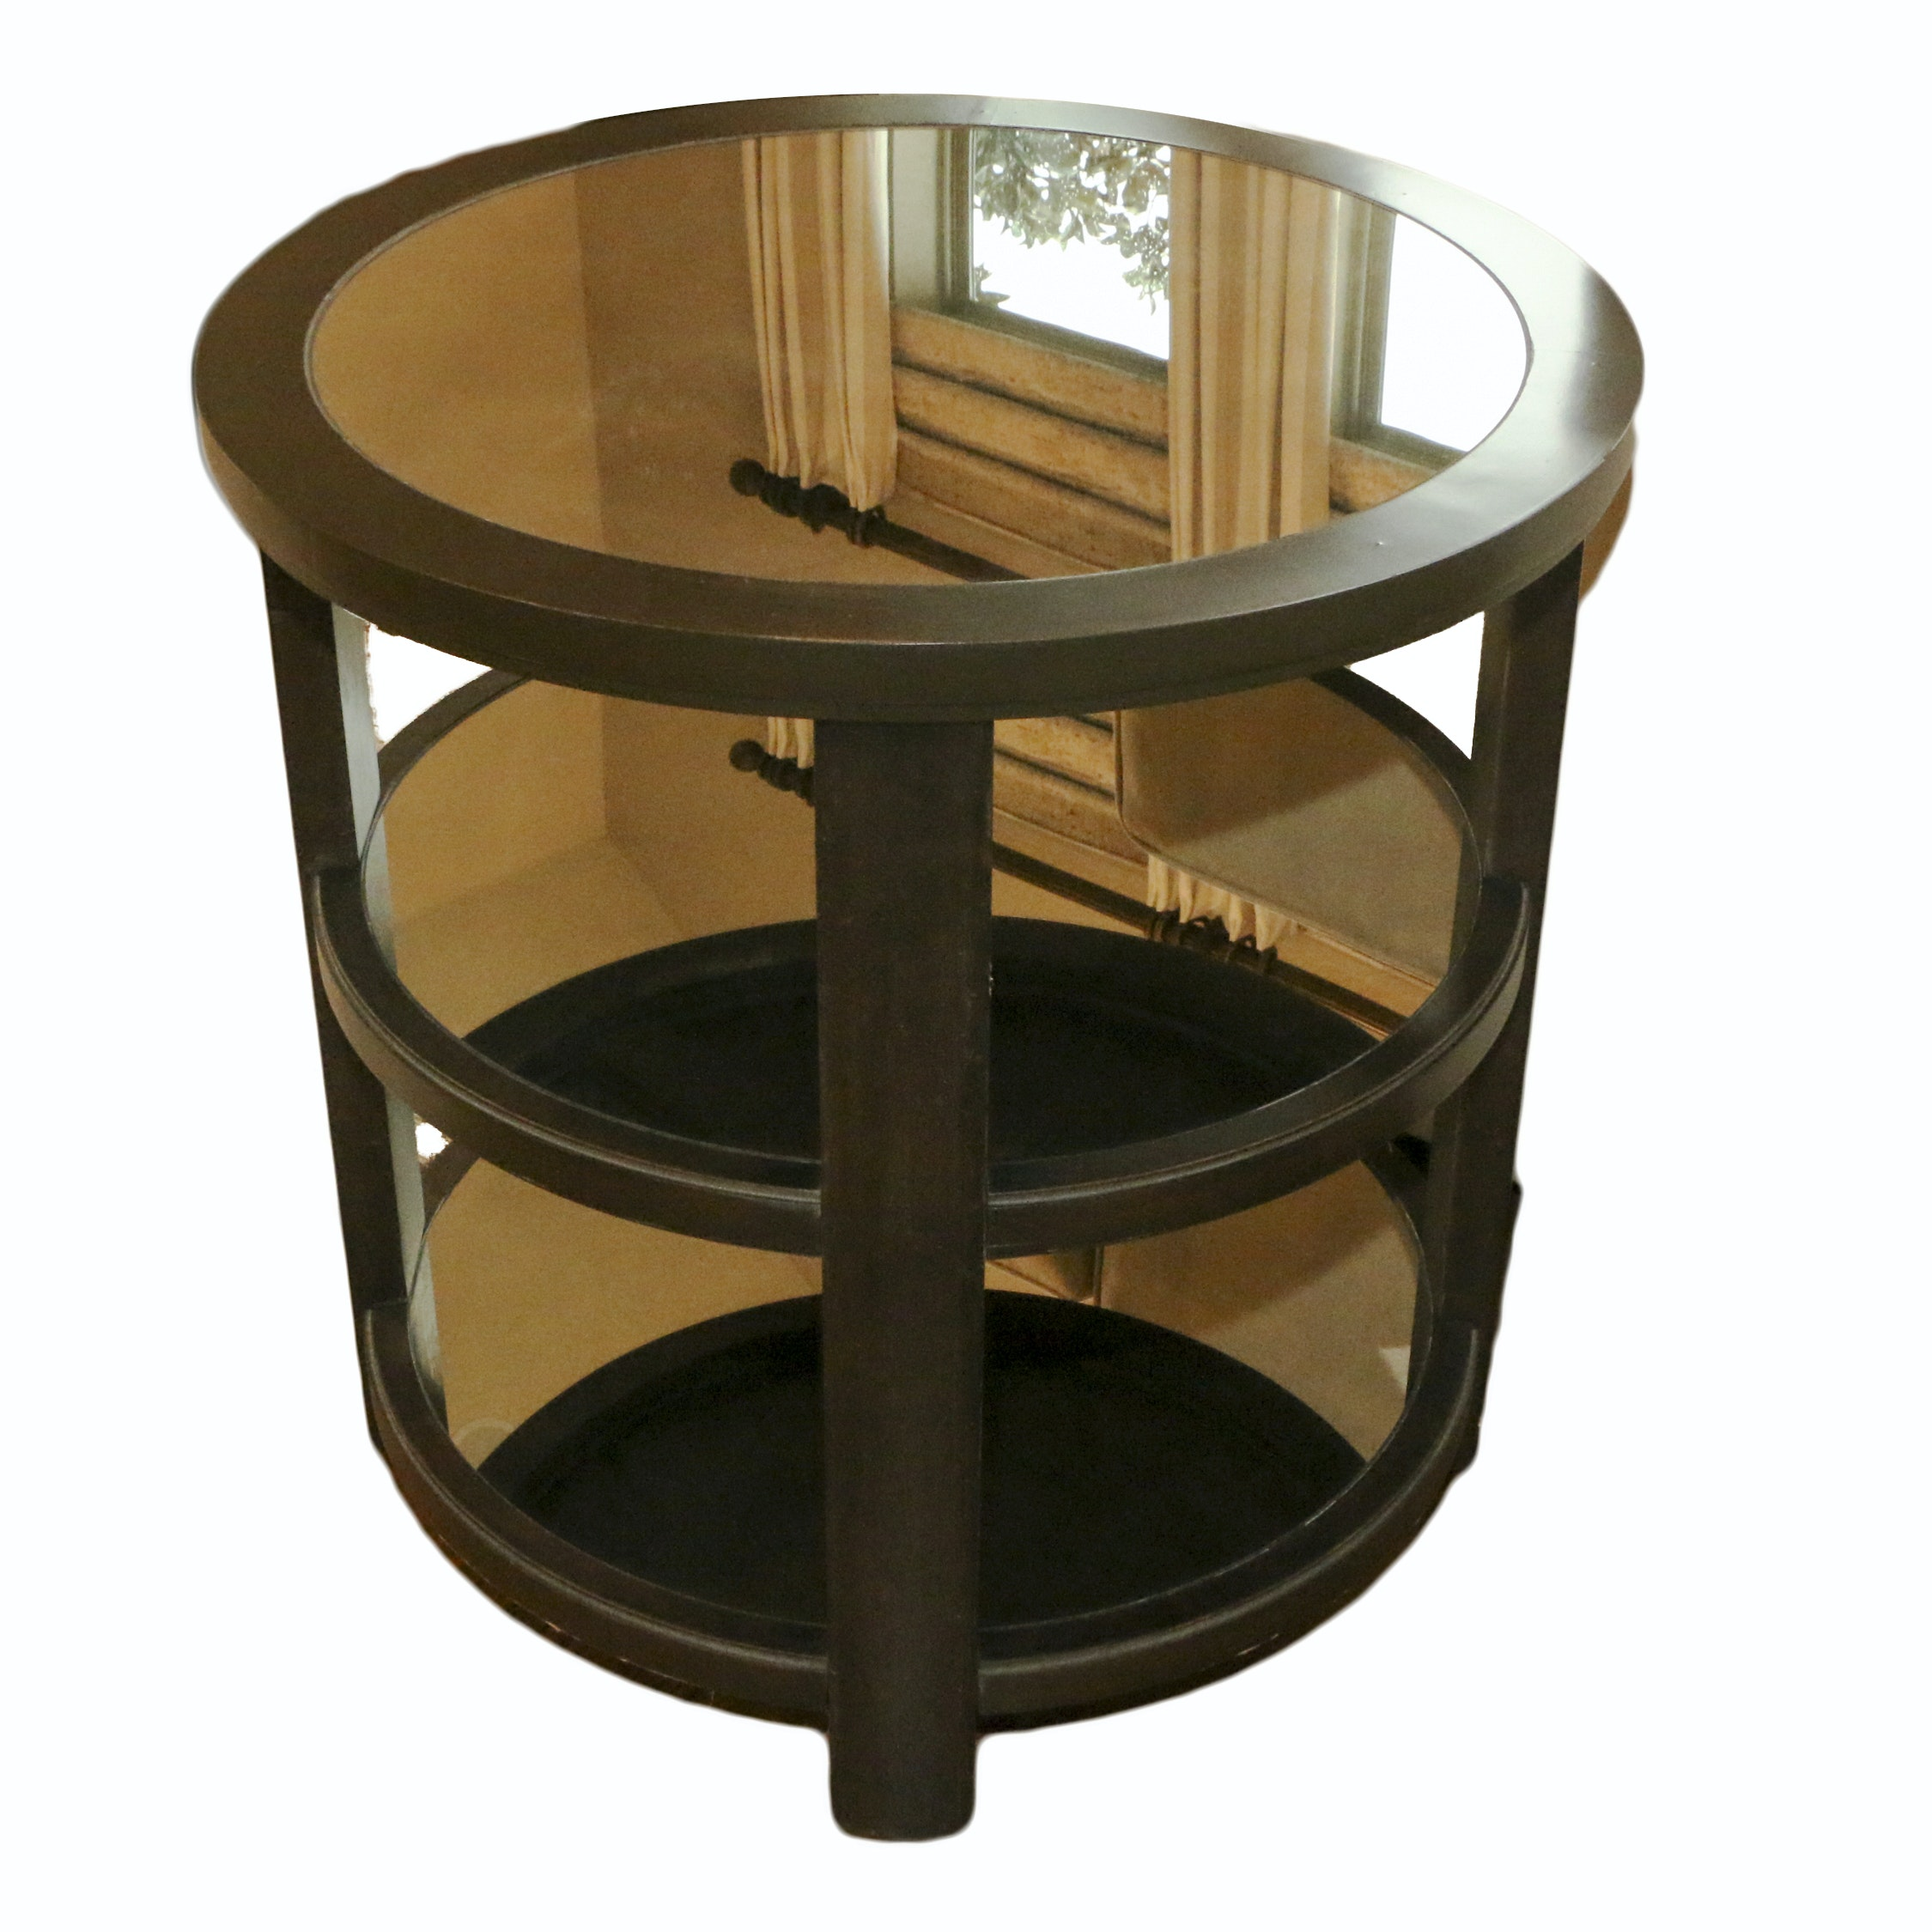 Mirror Top Three-Tier Side Table by Uttermost, 21st Century